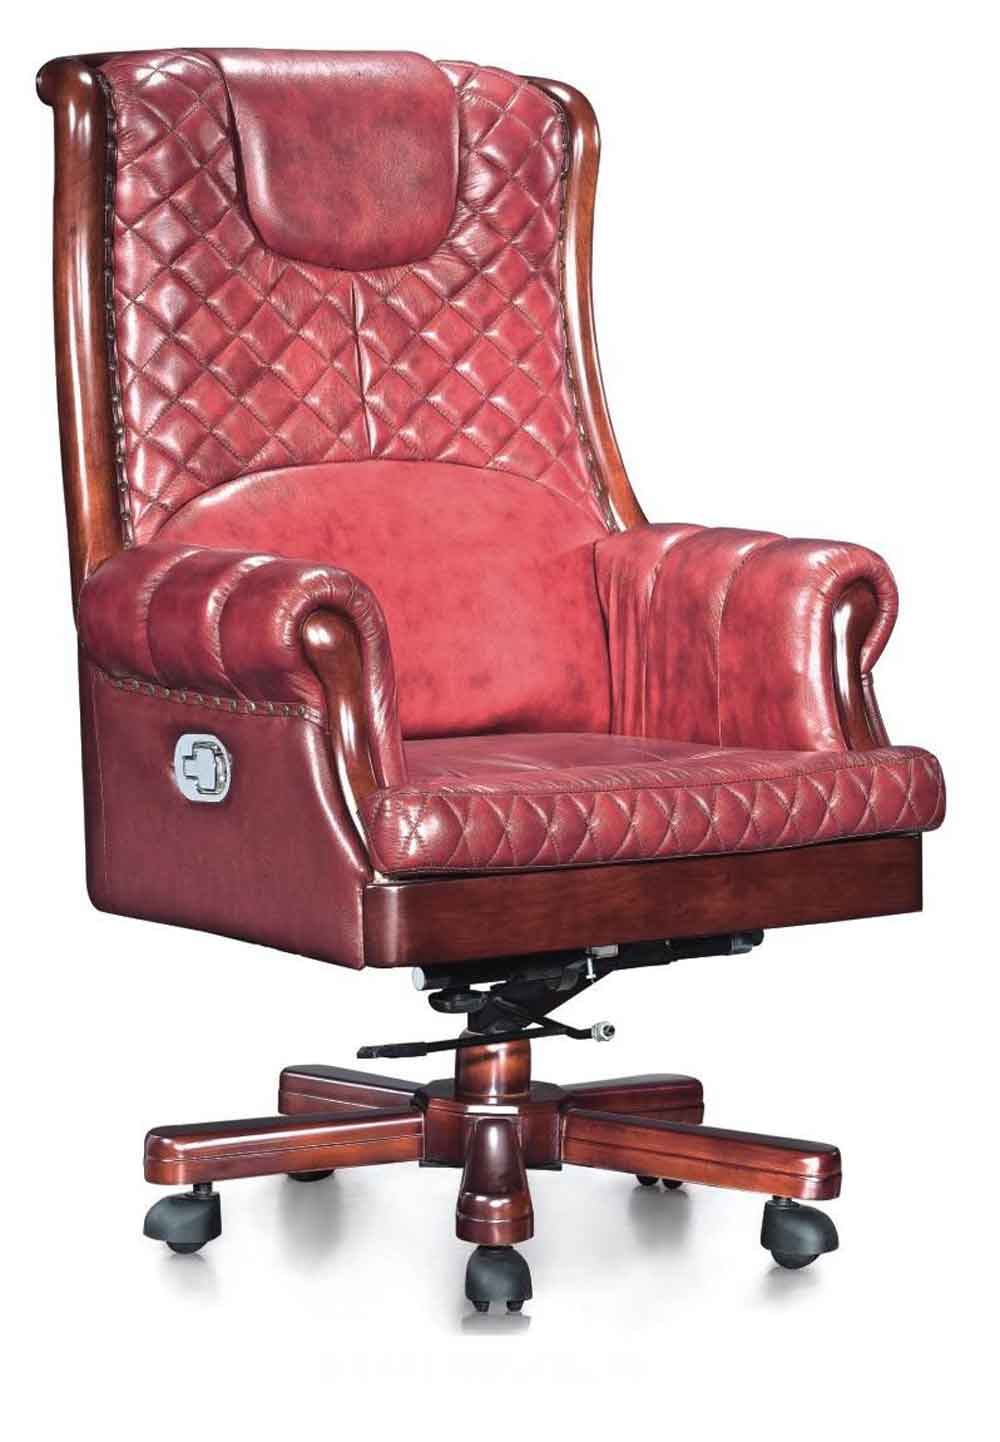 Classical Red leather desk chairs